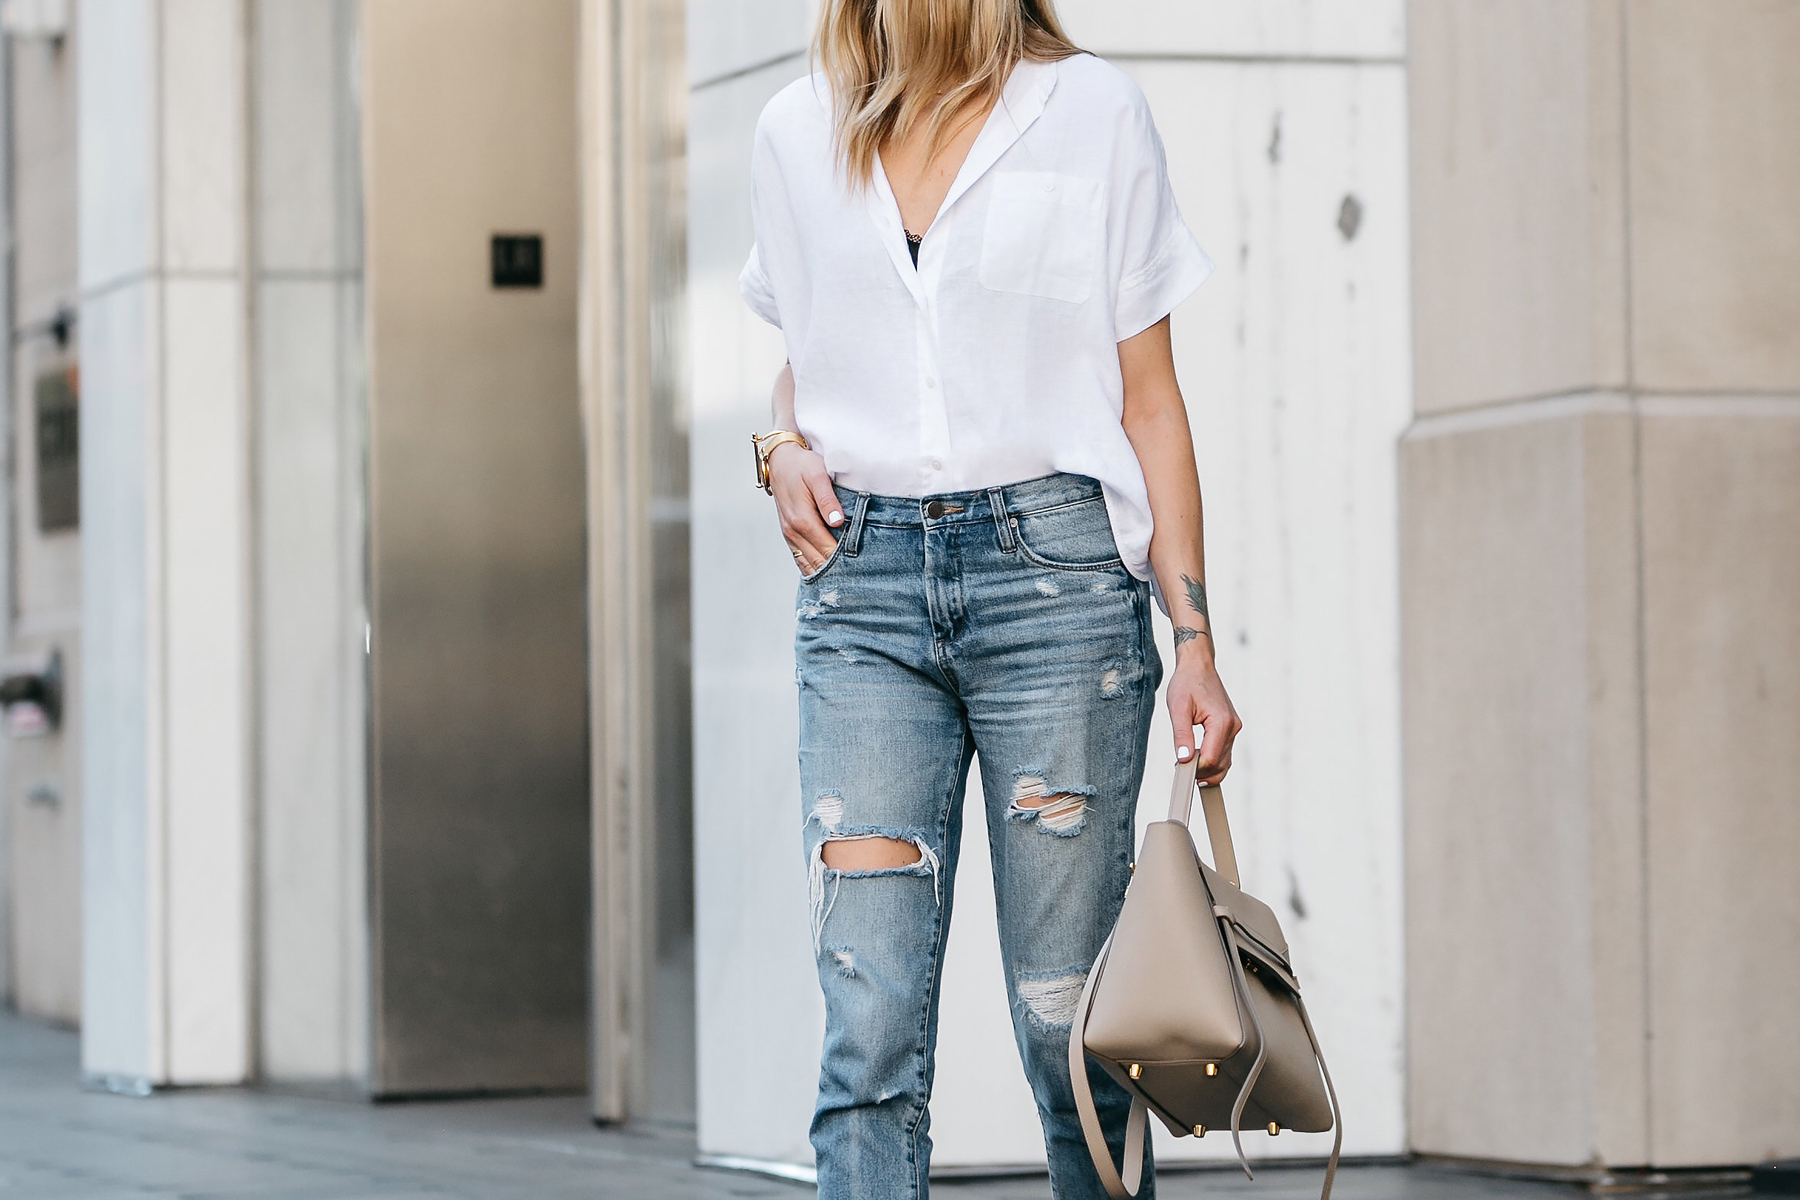 Fashion Jackson, Dallas Blogger, Fashion Blogger, Street Style, Everlane White Button Down Short Sleeve Shirt, Blanknyc Relaxed Ripped Denim Jeans, Celine Belt Handbag, Everlane Blush Pointed Slides, Celine Aviator Sunglasses